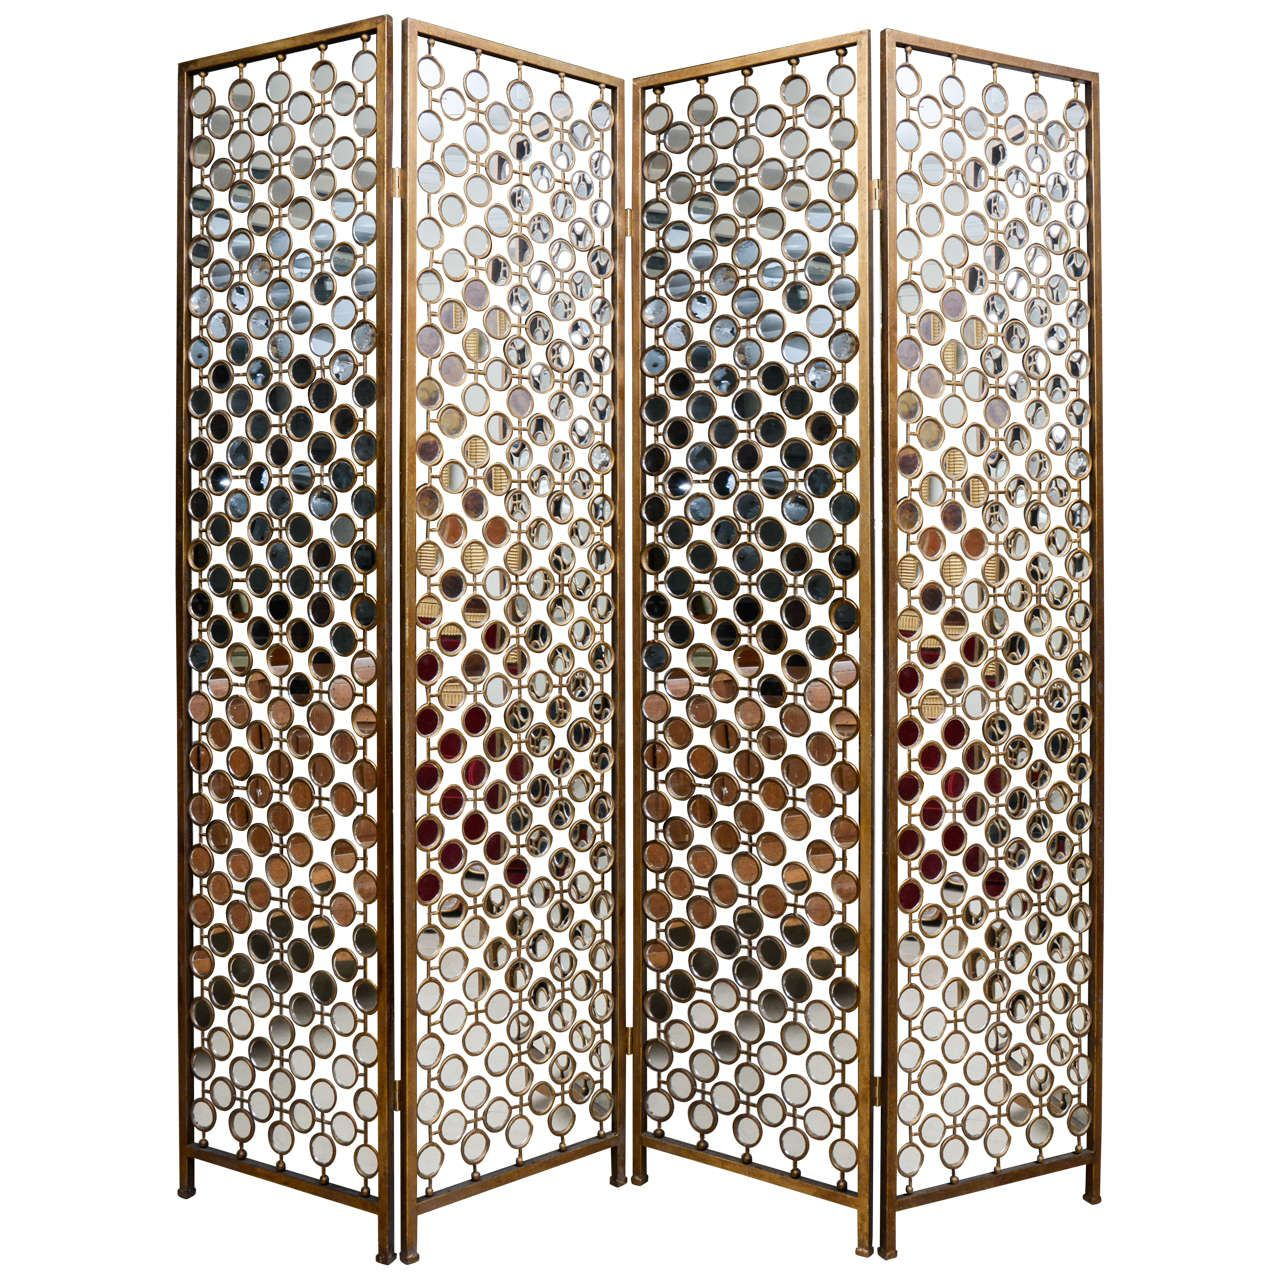 Mirrored And Metal Divider Screen 1stdibs Com Mirror Room Divider Mirror Wall Decor Mirror Design Wall Metal room divider screen